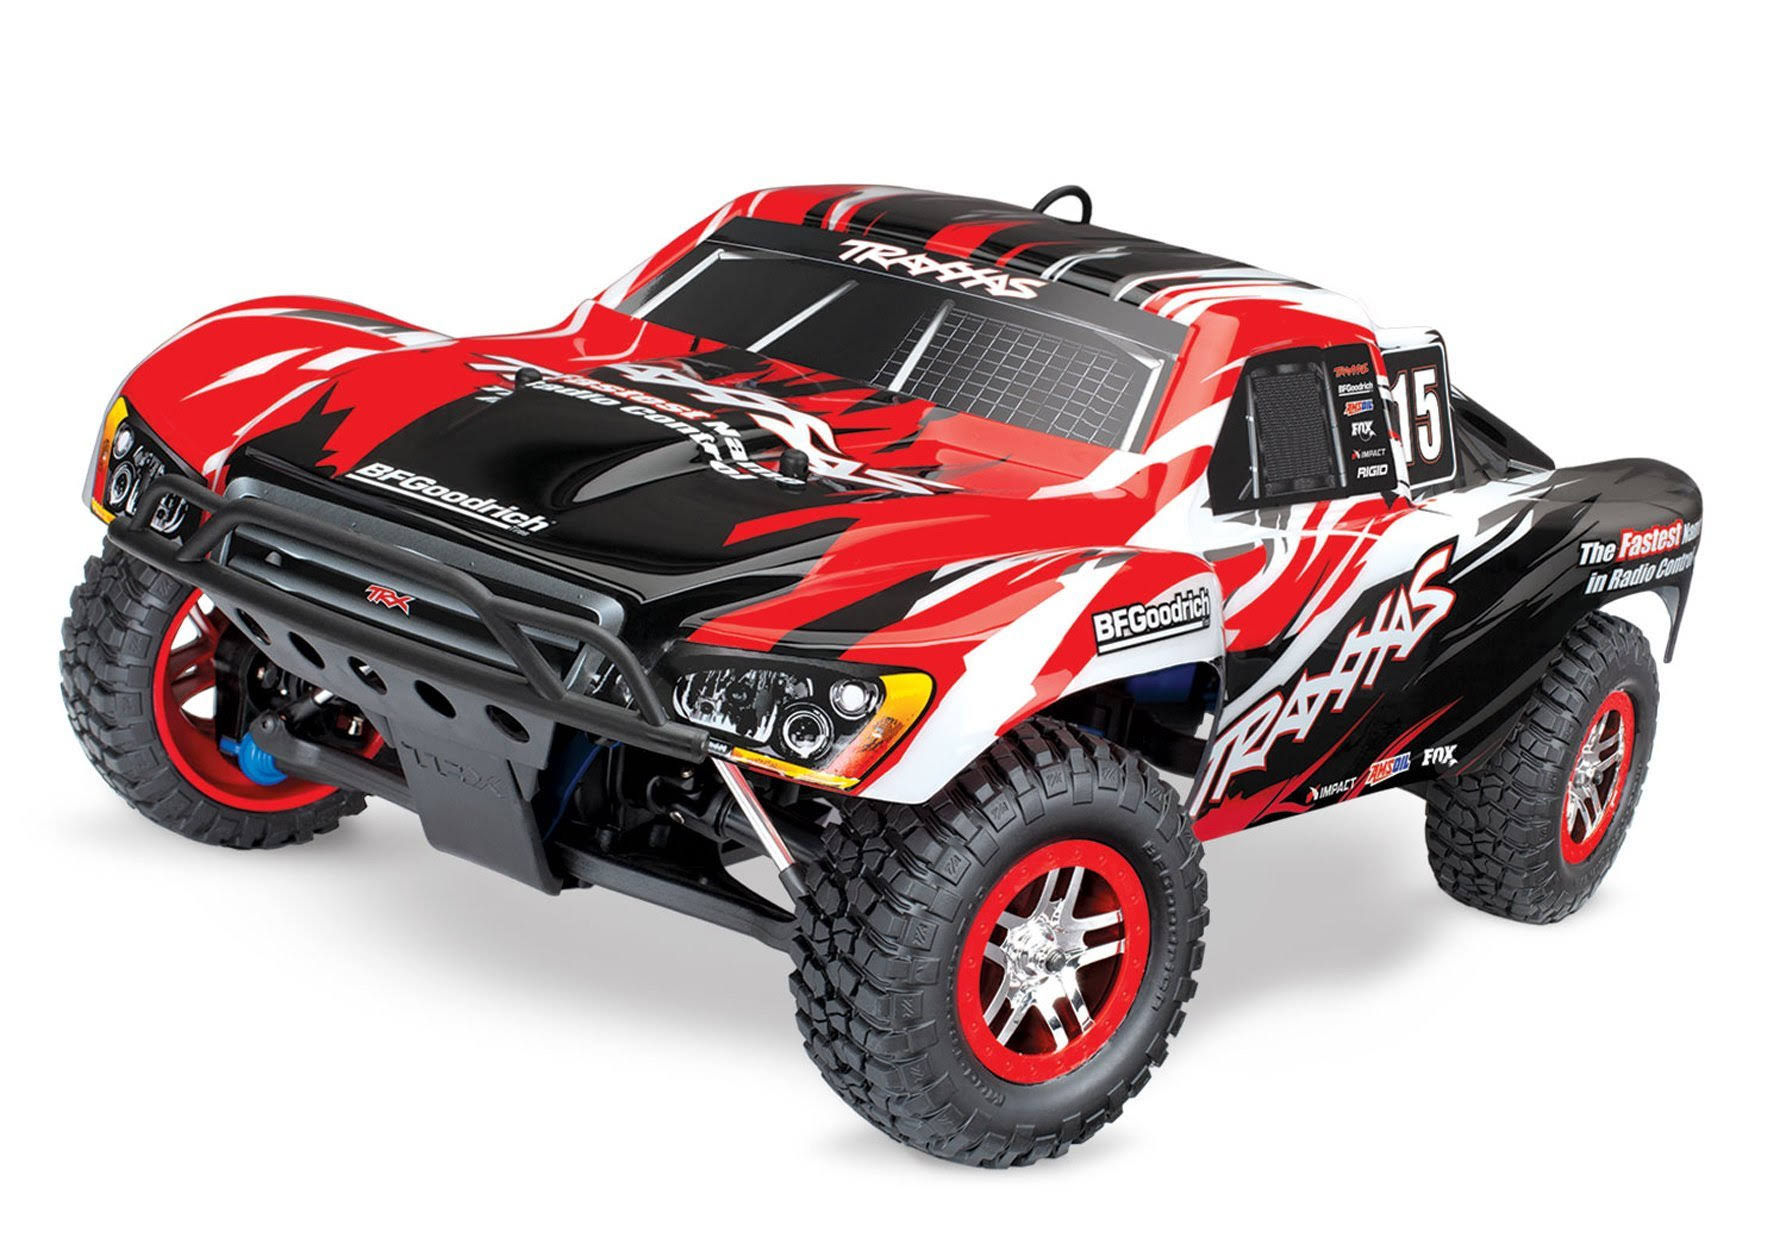 Traxxas Slayer Pro 4x4 Nitro Powered 4WD Truck - Red, Scale 1:10